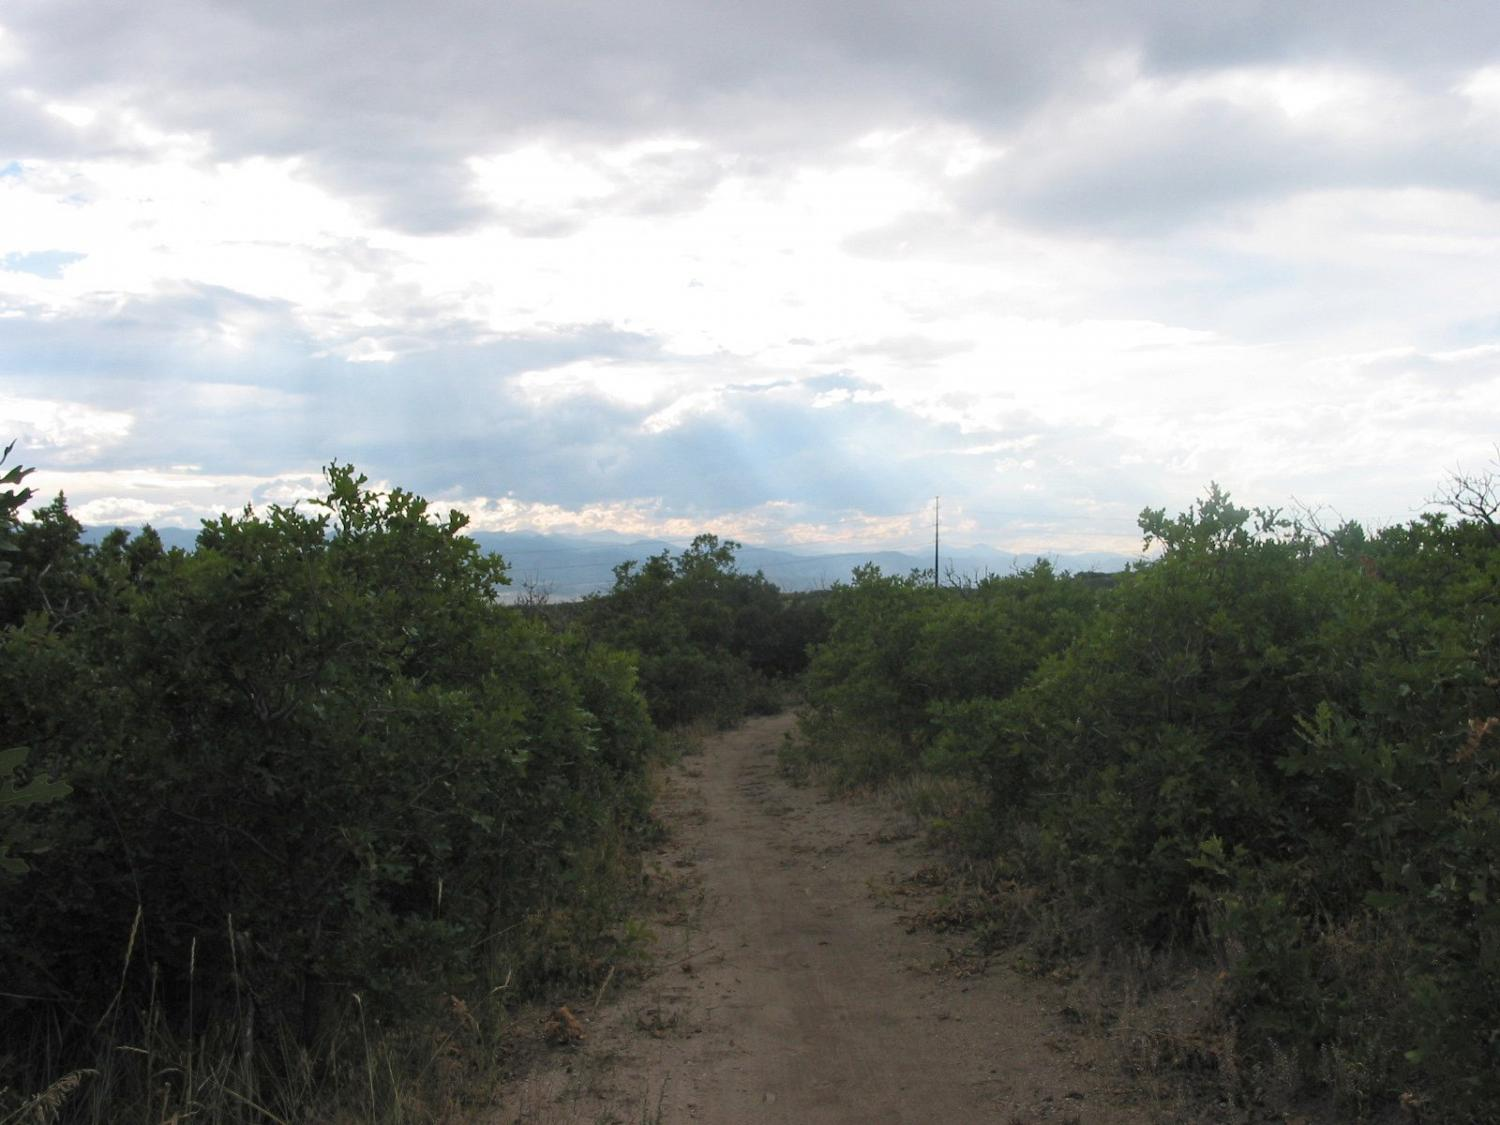 Tenderfoot trail winding through the scrub oak on August 19, 2010